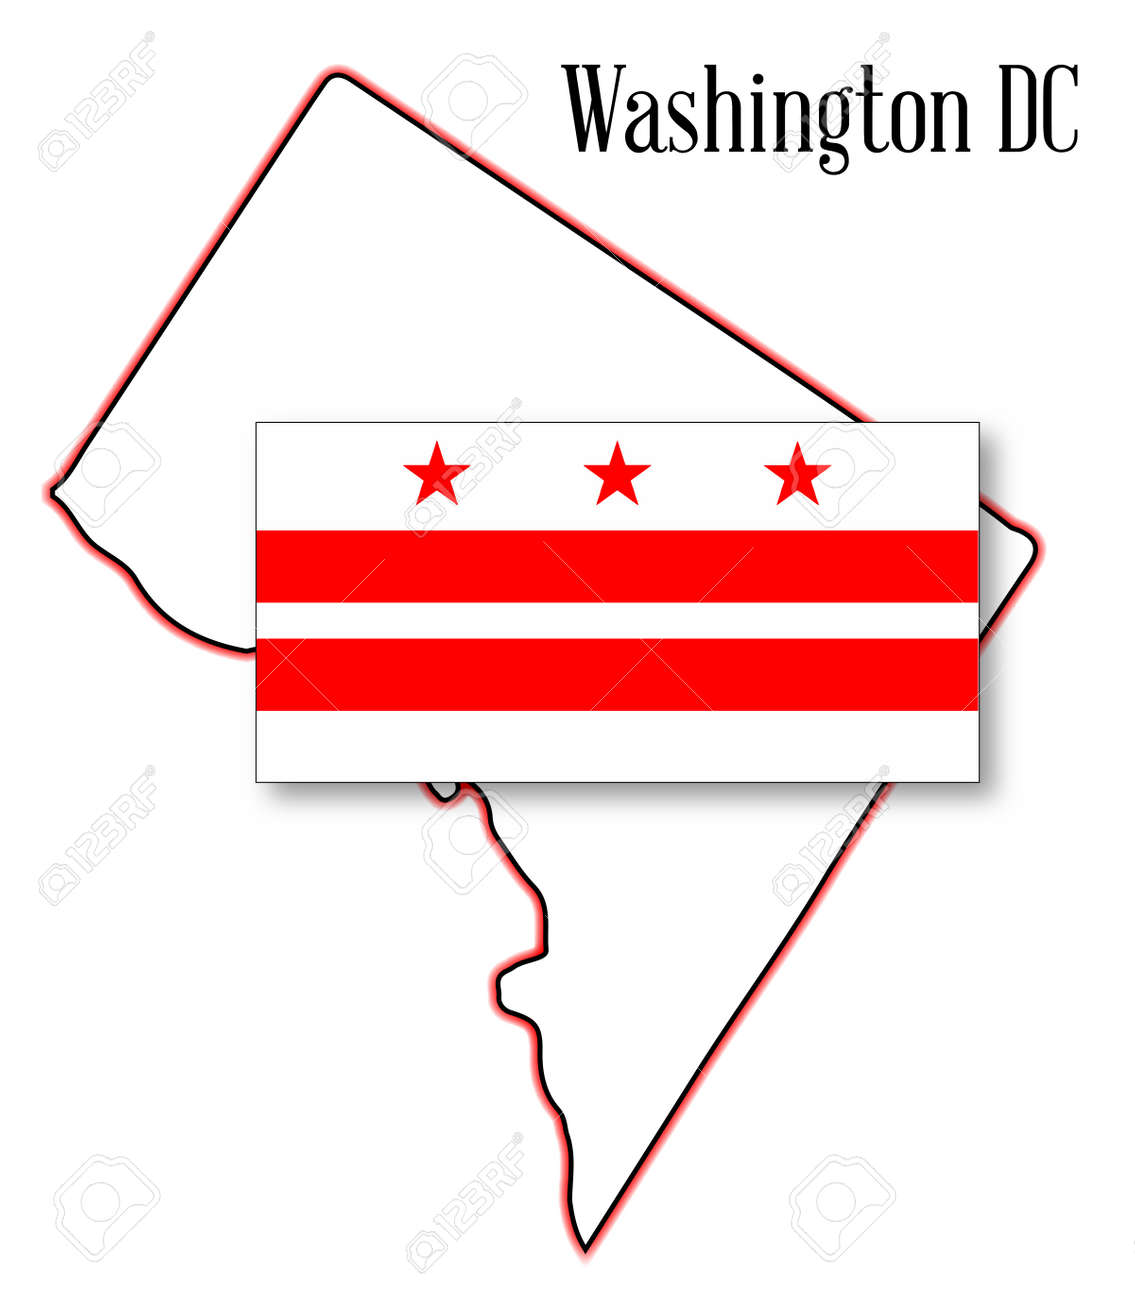 Outline Map Of Washington DC Over A White Background With Flag - Washington dc map symbol